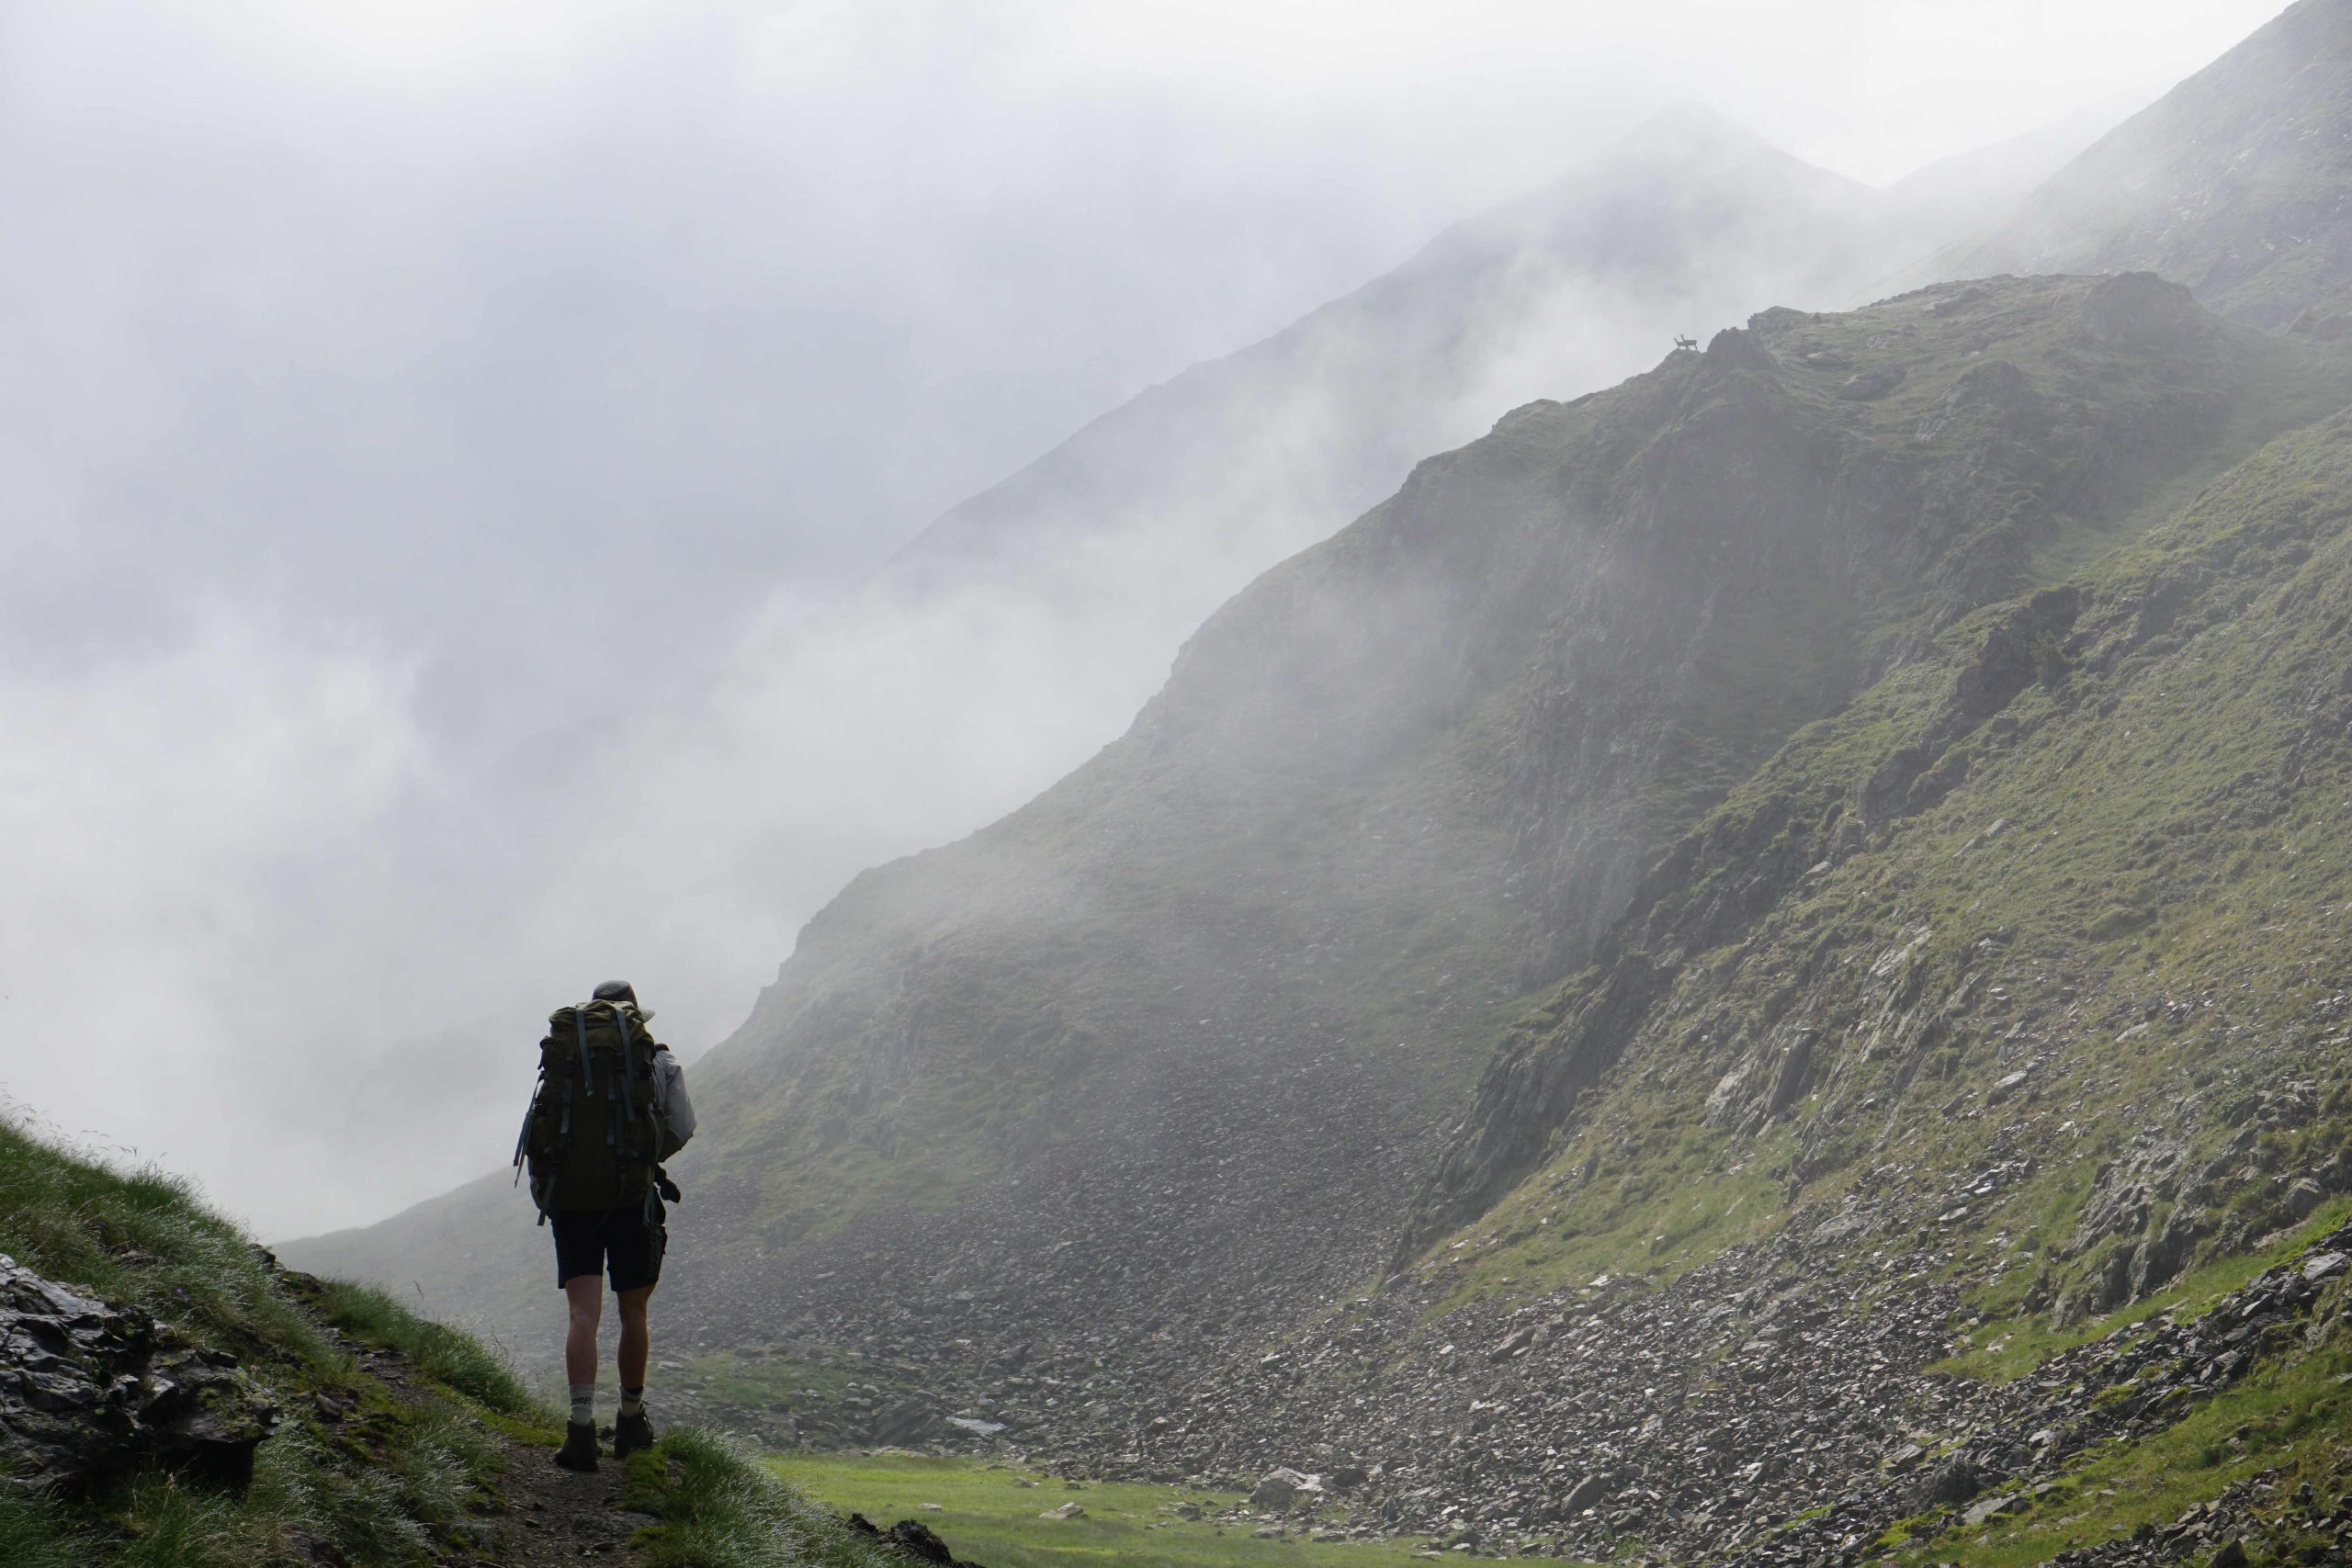 Precipitous backpacking in the Pyrenees